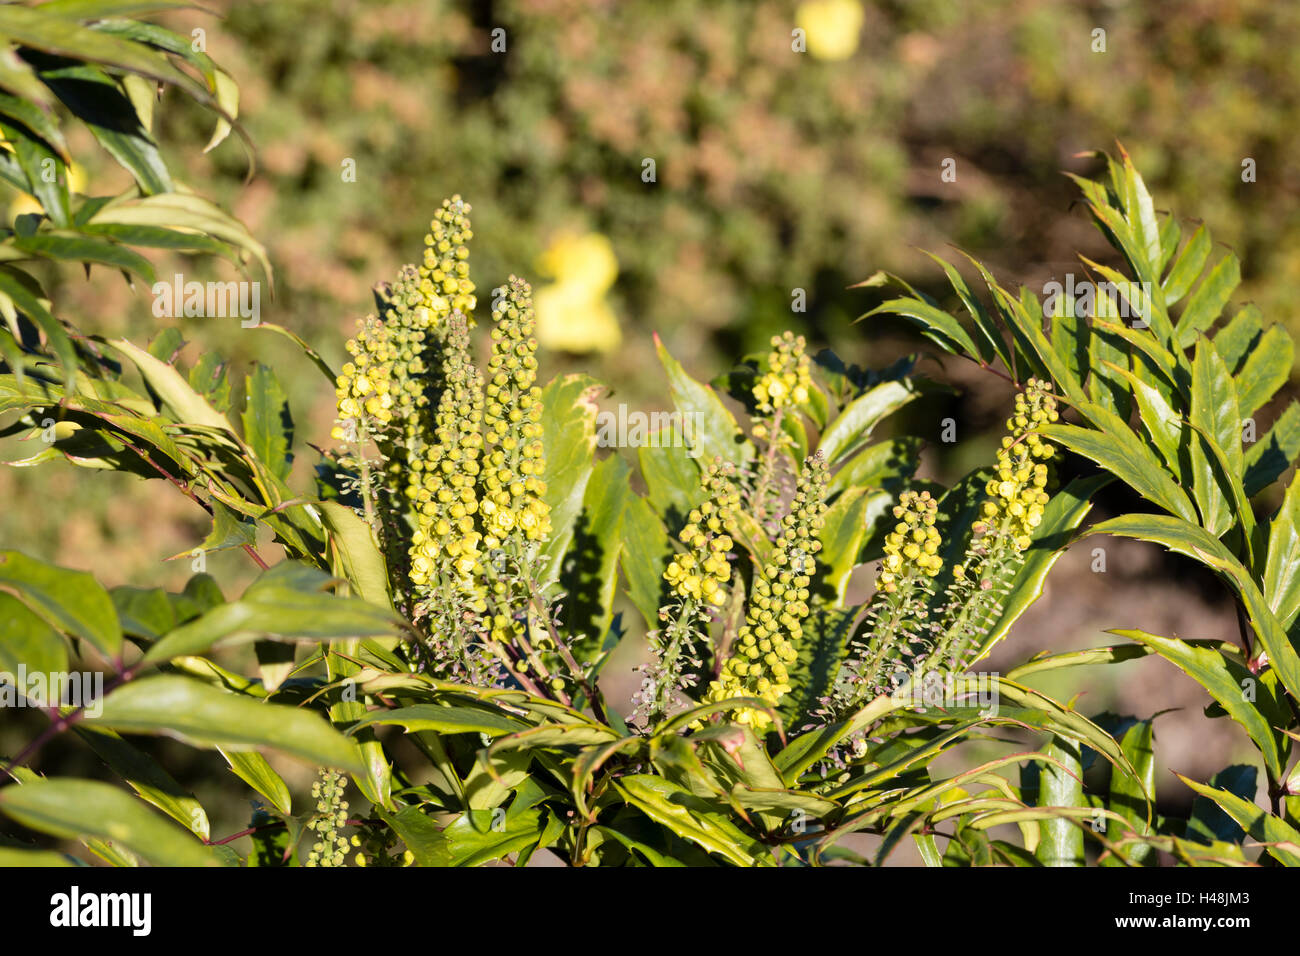 Narrow leaves and yellow early autumn flower spikes of the